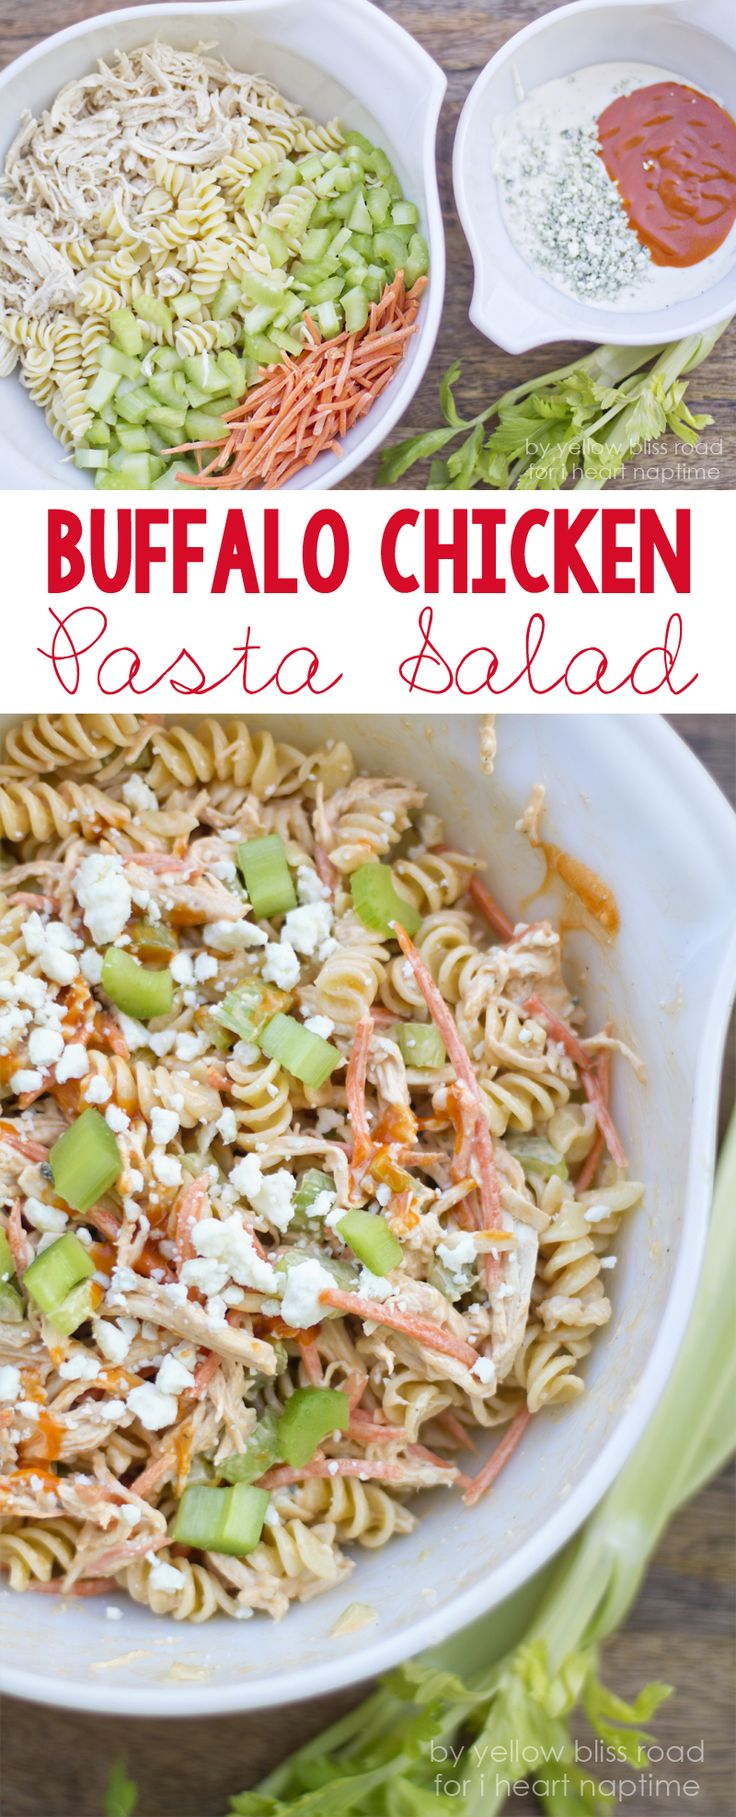 Buffalo Chicken Pasta Salad on iheartnaptime.com ...yum! #recipes